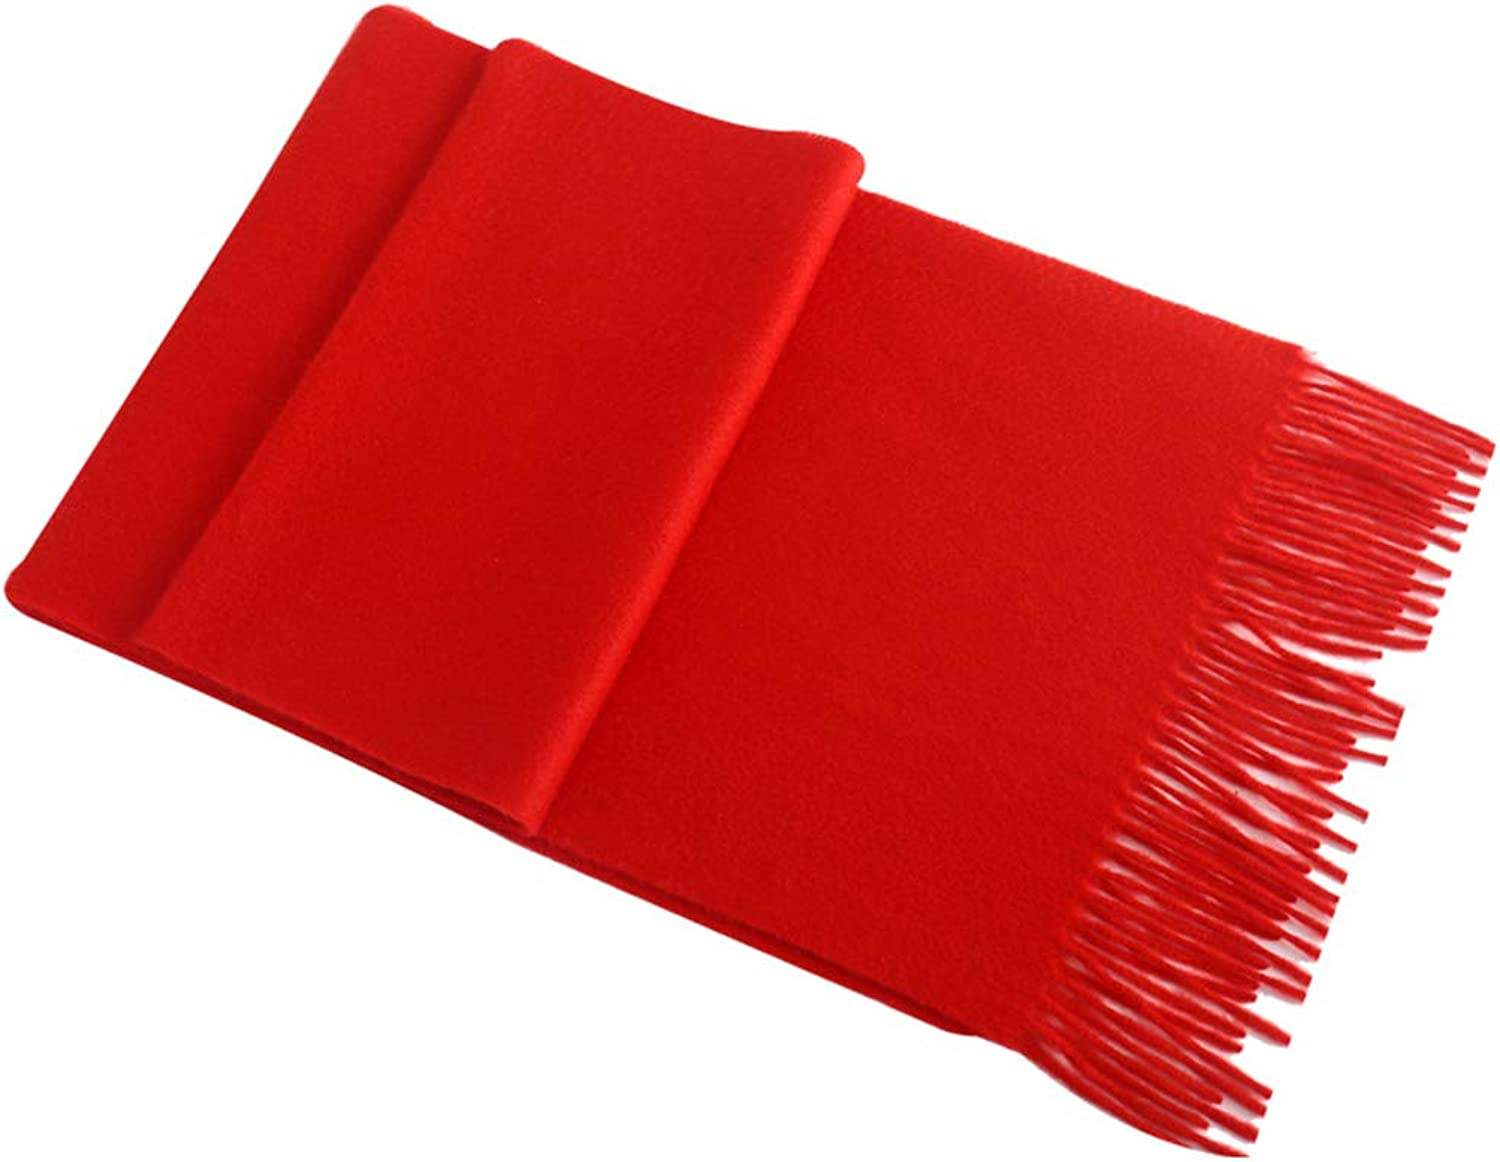 Scarves 100% Pure Cashmere Scarf  Female Spring and Autumn Winter Solid color Thick Warm Long red Collar Korean Shawl Stoles (color   Red, Size   30  180cm)